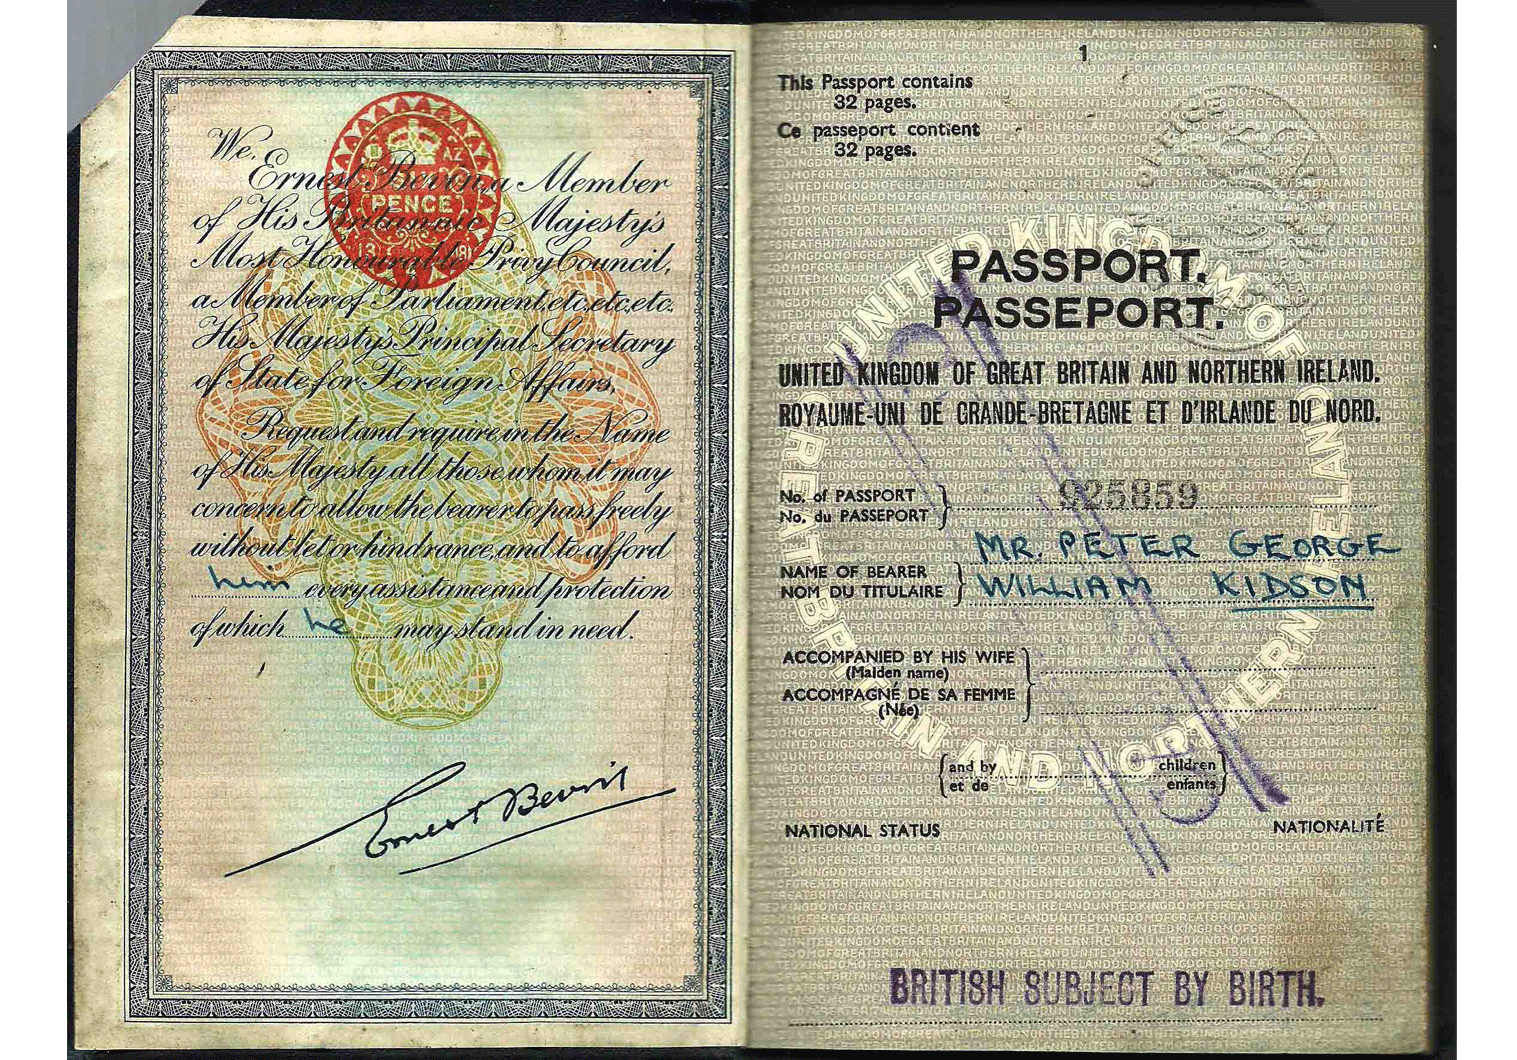 British Diplomatic passport